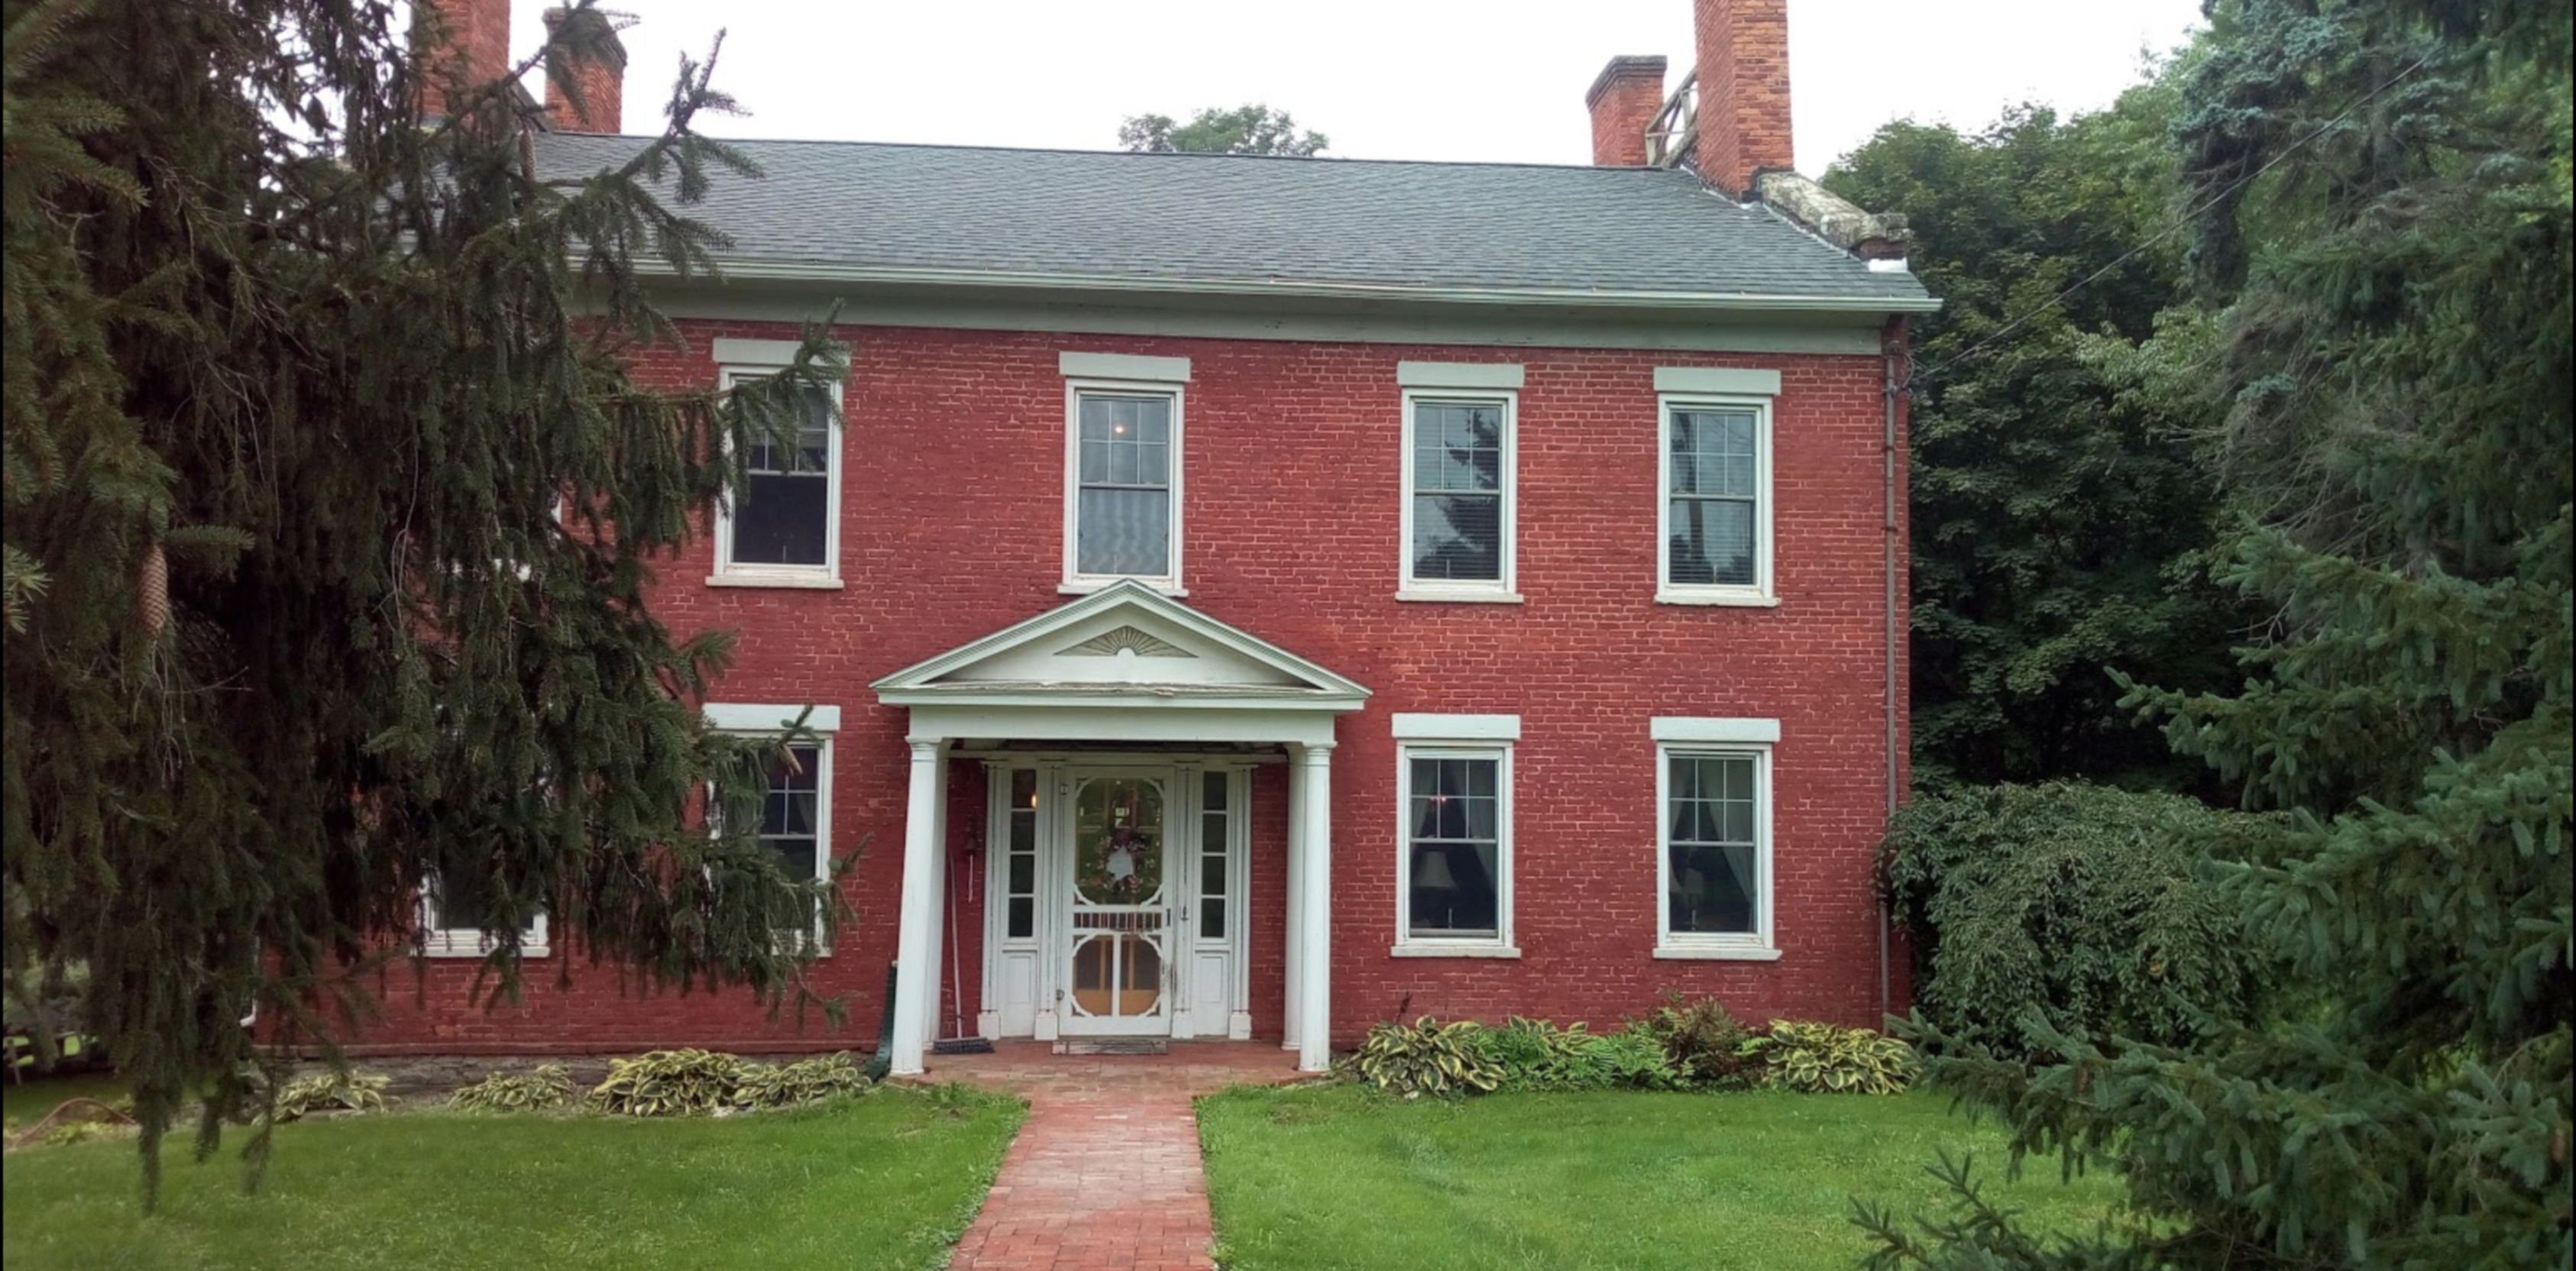 A large brick building with grass in front of a house at 1819 Red Brick Inn.